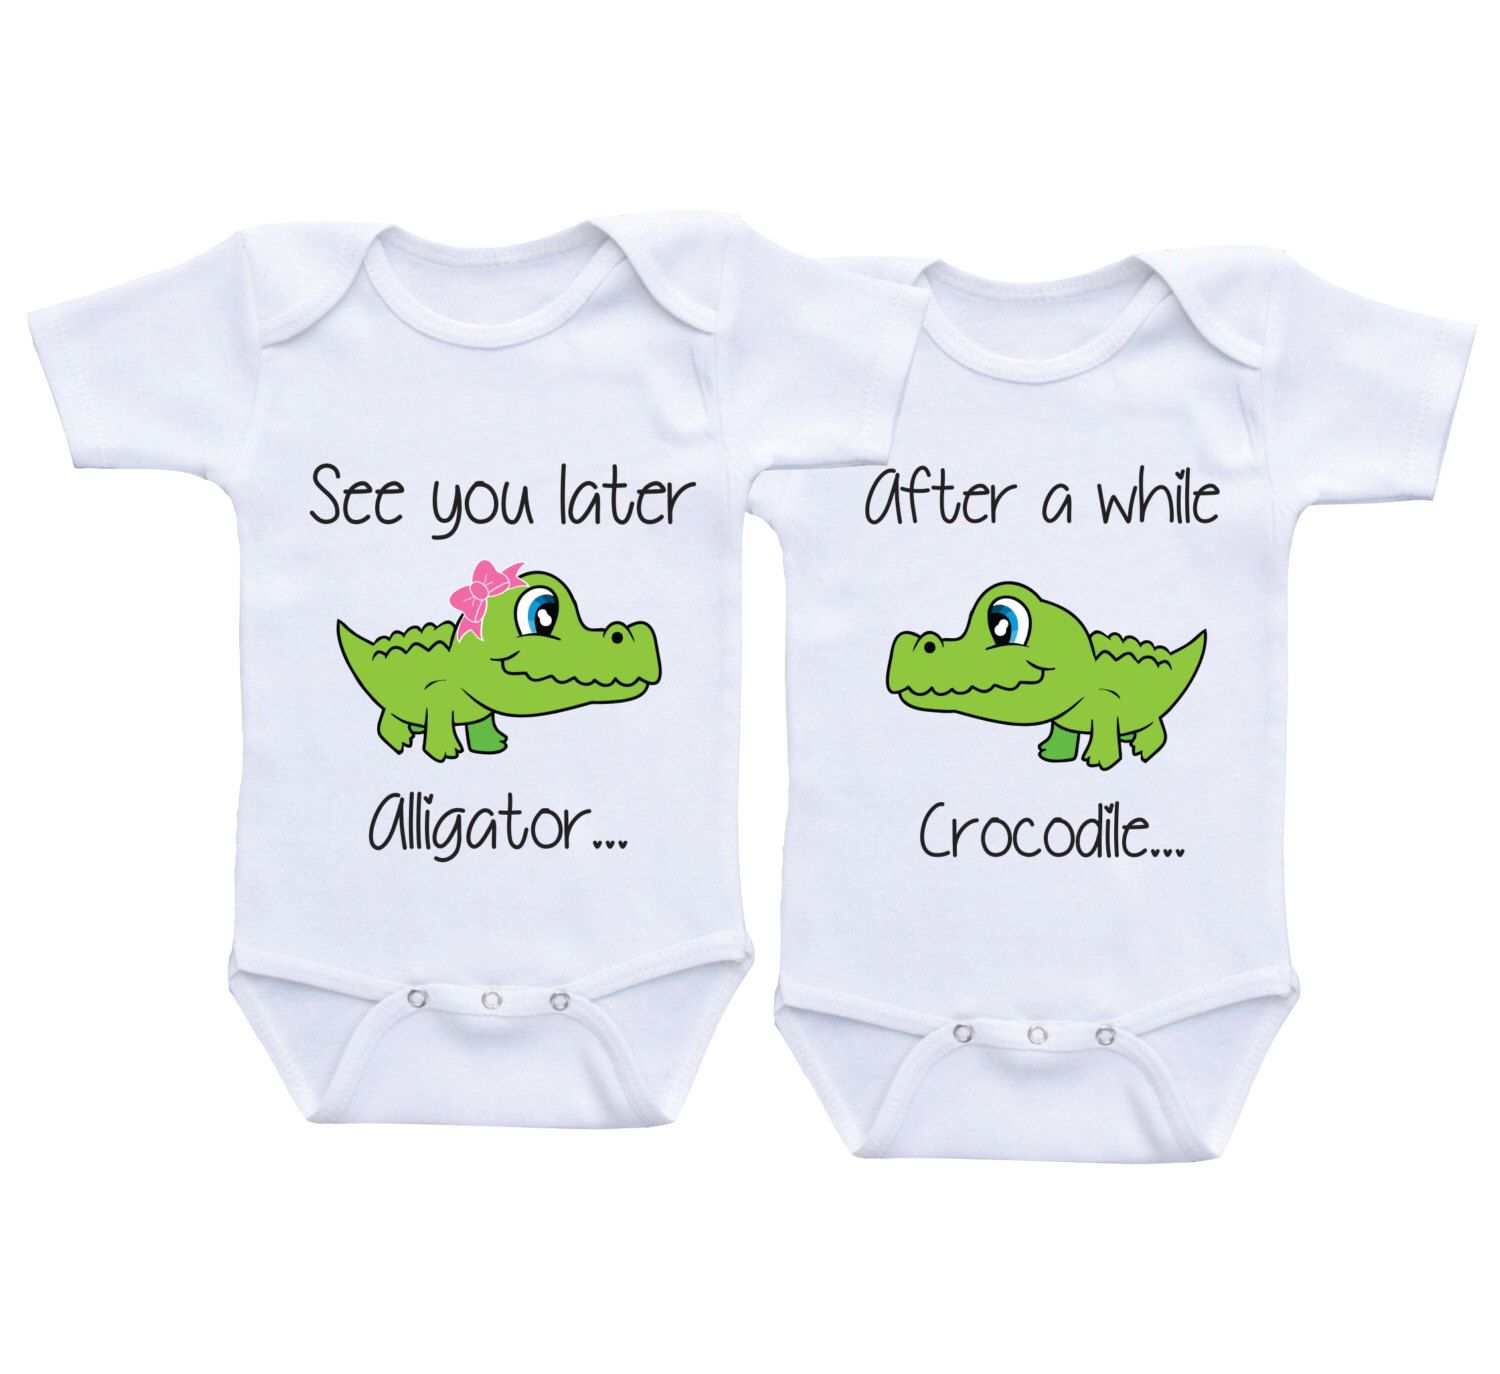 2ecdf18b184a8 Twin baby gift Twin onesies Boy Girl Twins Twin onesies boy and girl ...